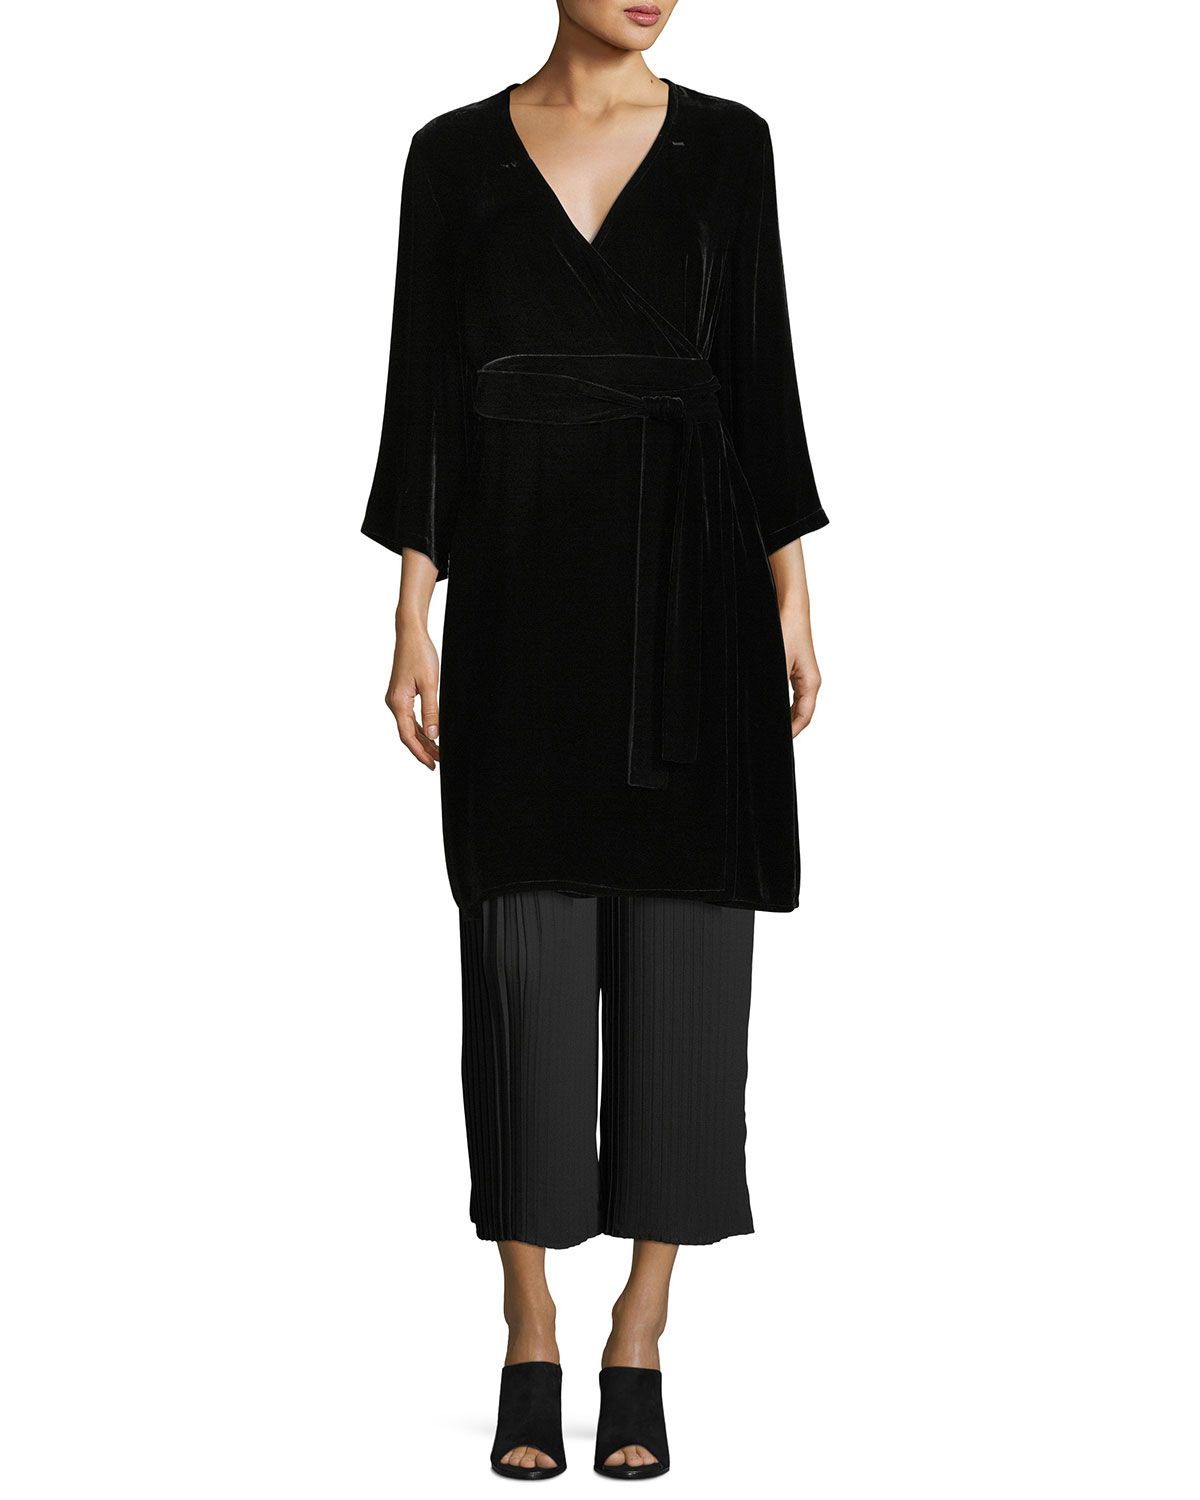 Velvet 3/4-Sleeve Wrap Dress, Plus Size